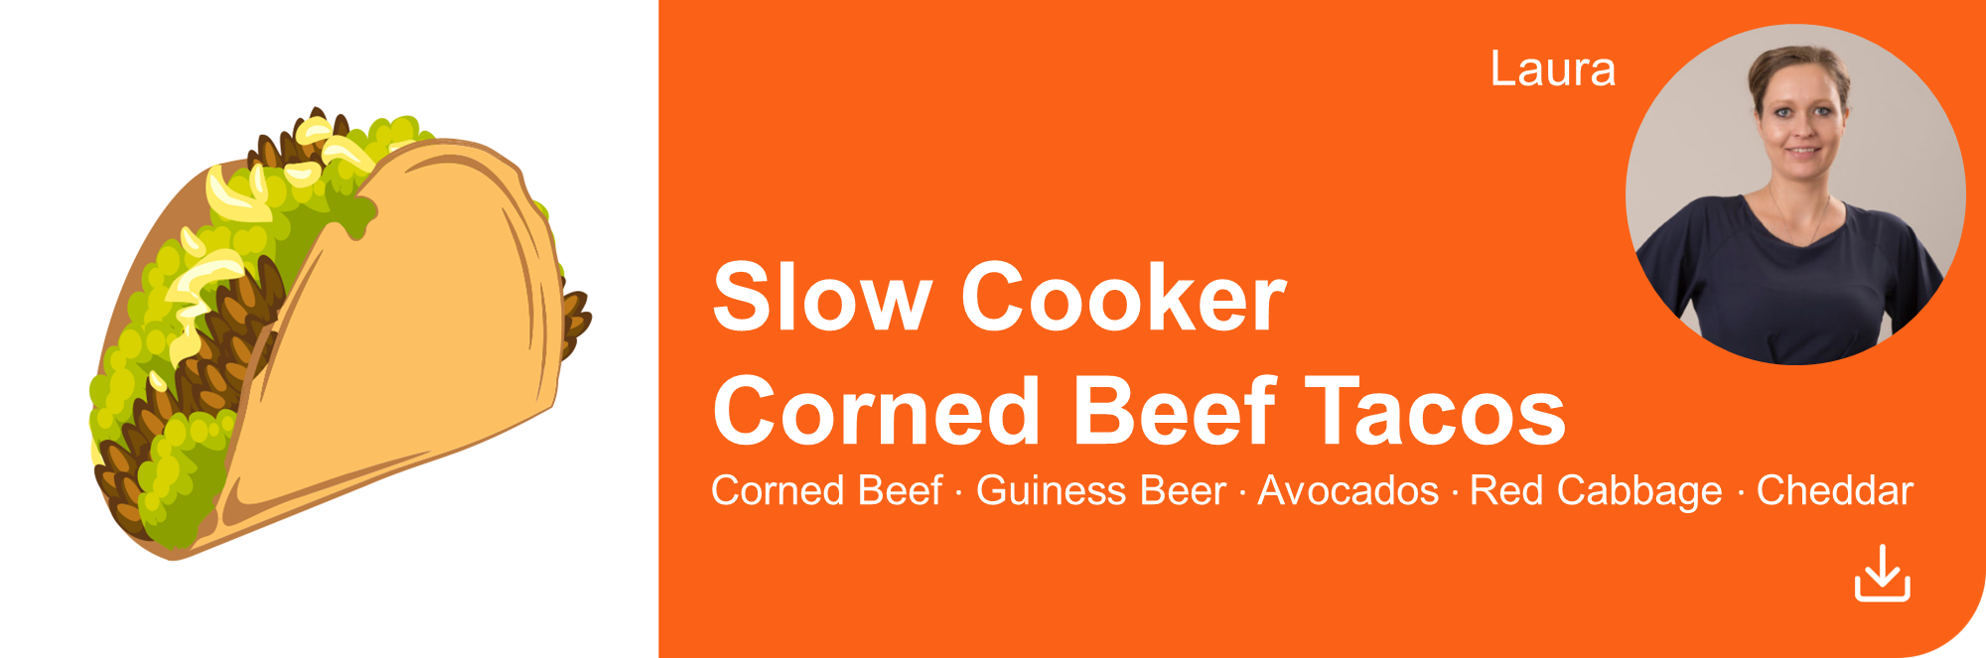 Creative Marketing Concepts QuarantineAndChill Slow Cooker Corned Beef Tacos Laura